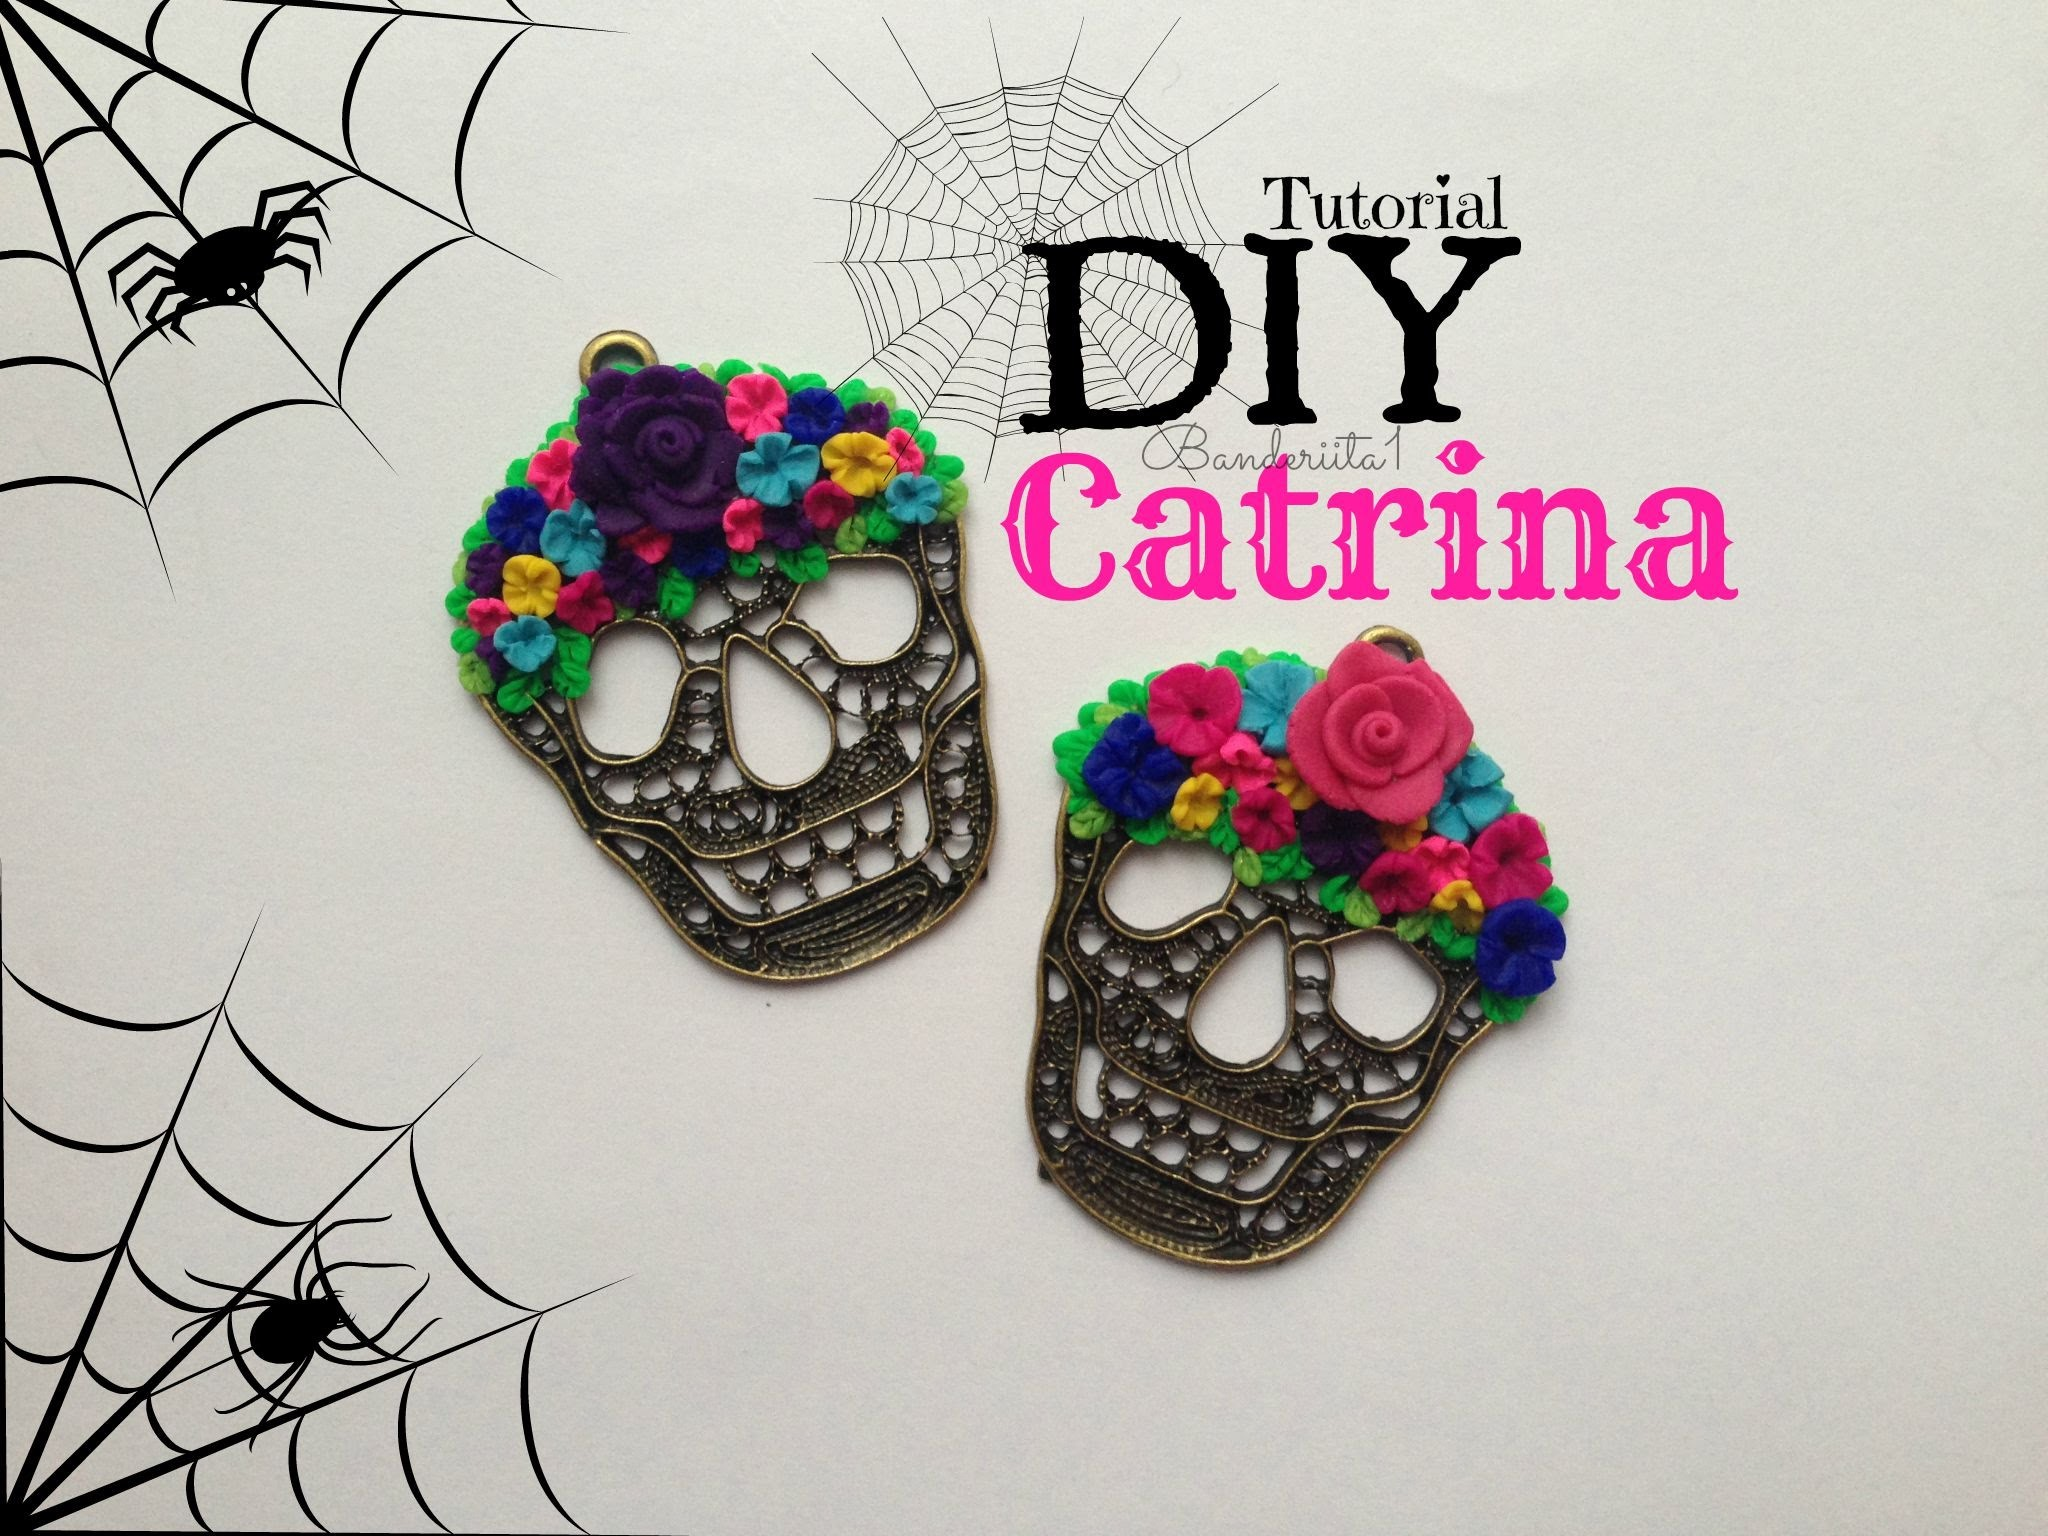 Catrina Tutorial DIY- How to Sugar Skull Polymer Clay